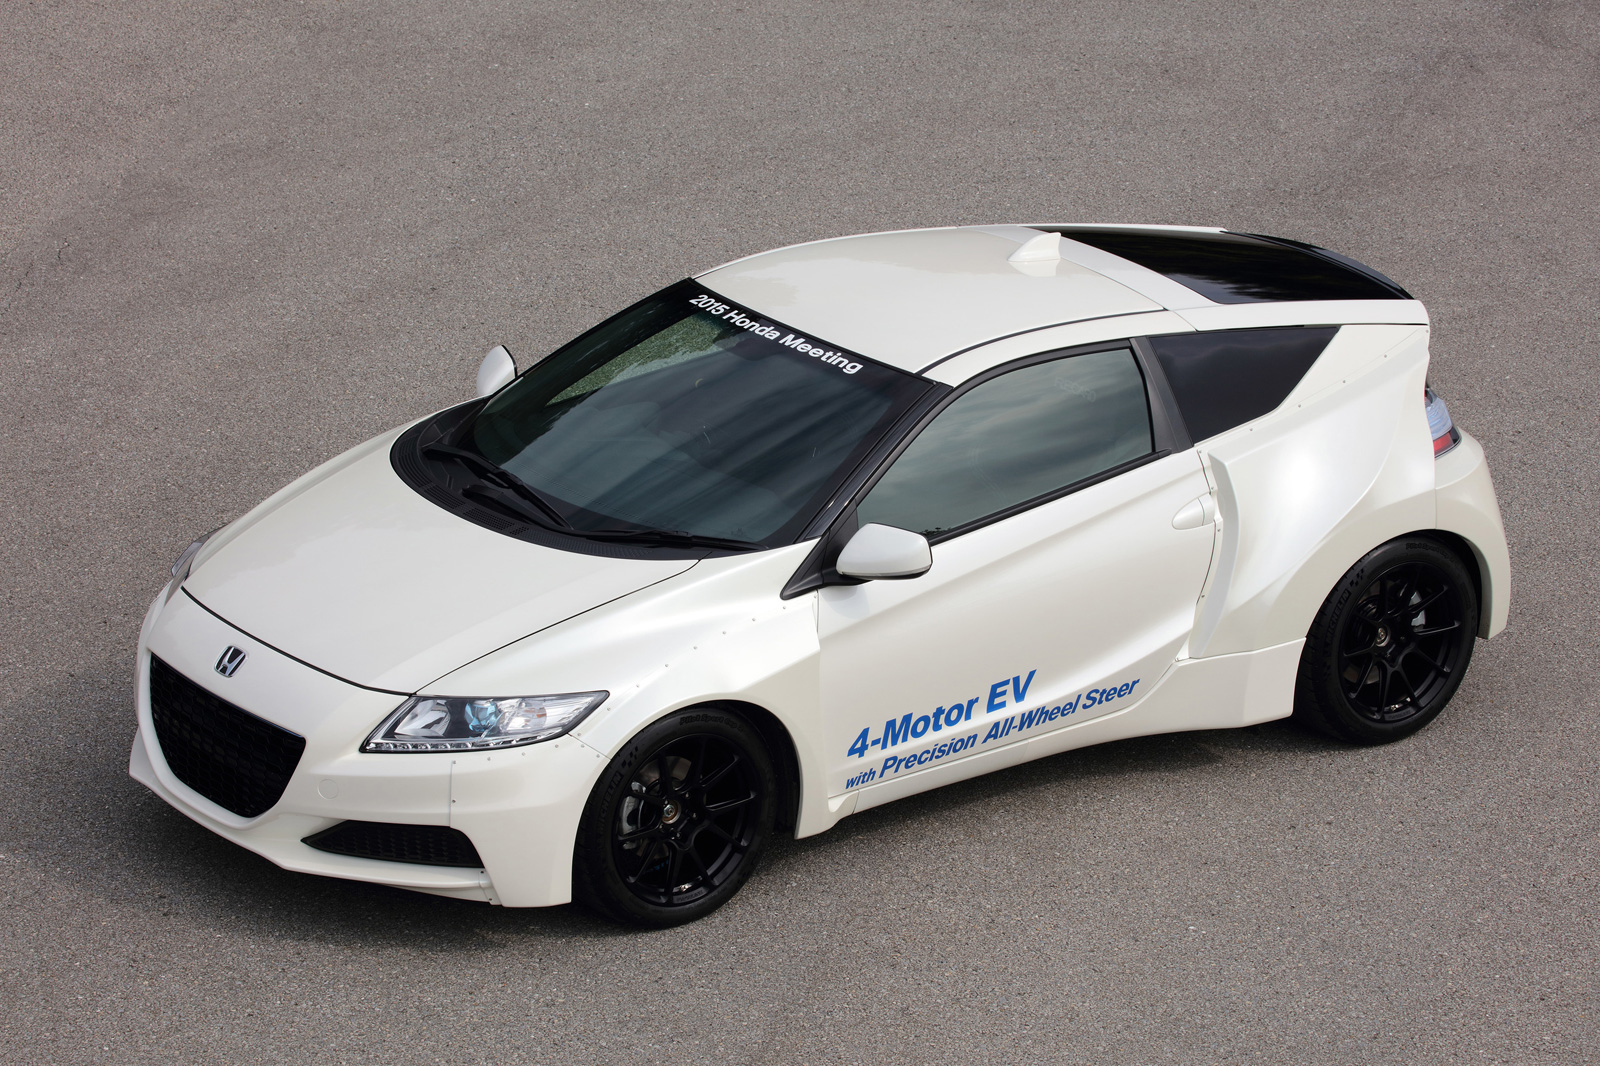 Honda Developing All Electric Sports Car With 350 HP